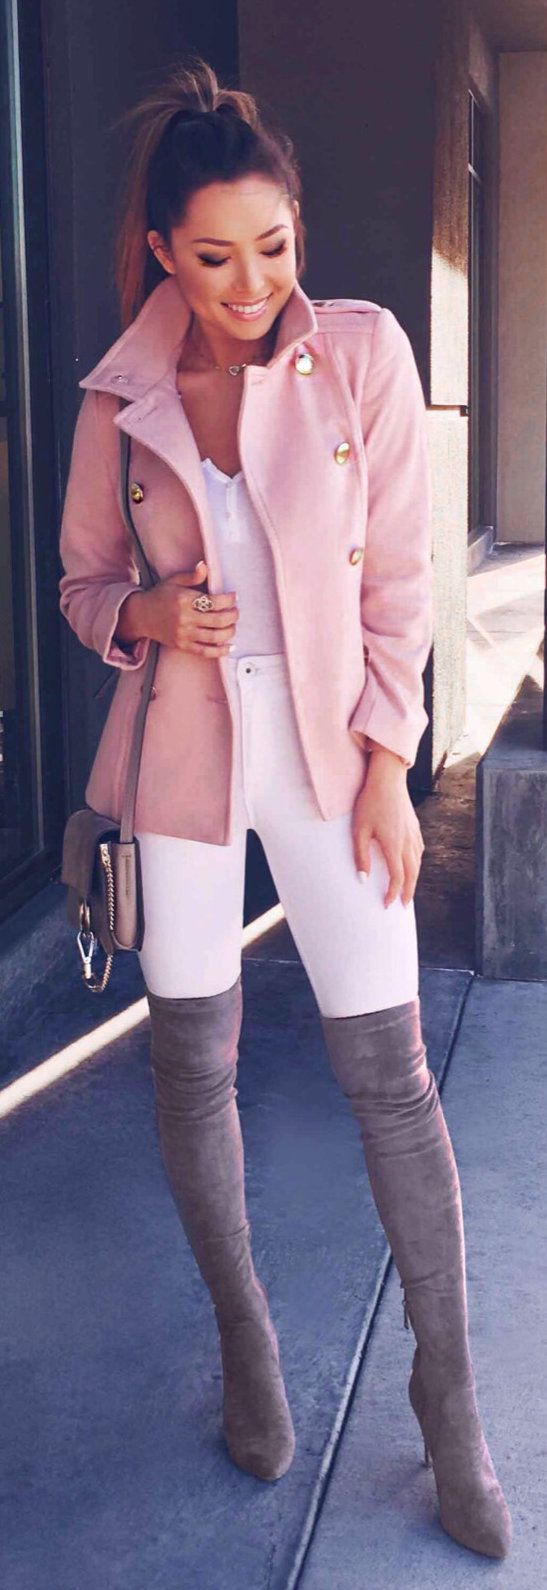 #spring #outfits pink leather jacket with thigh-high boots. Pic by @hapatime